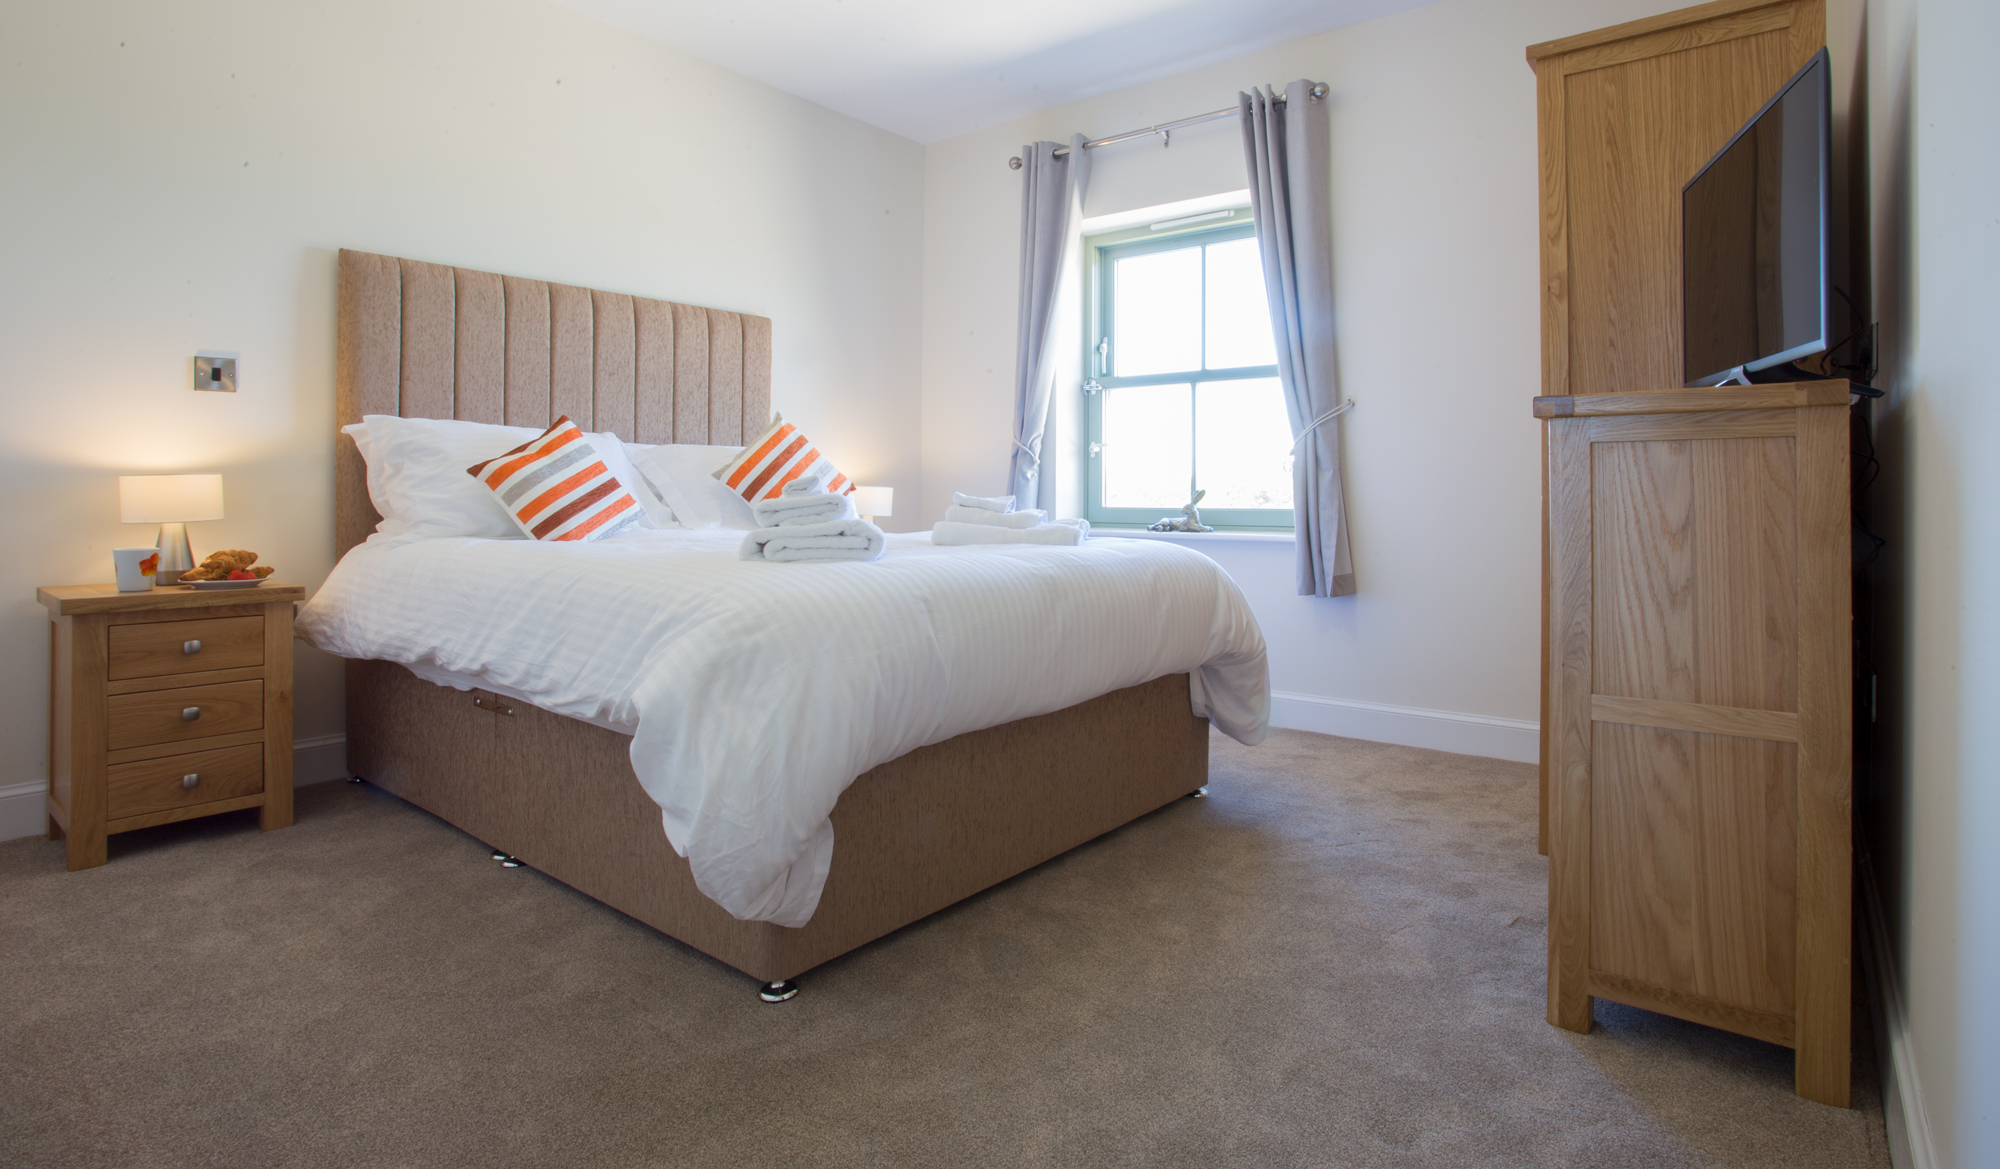 gorgeous large cottages Alnwick Morpeth, large cottages to rent in Northumberland for party, cottages with rooms to hire for party